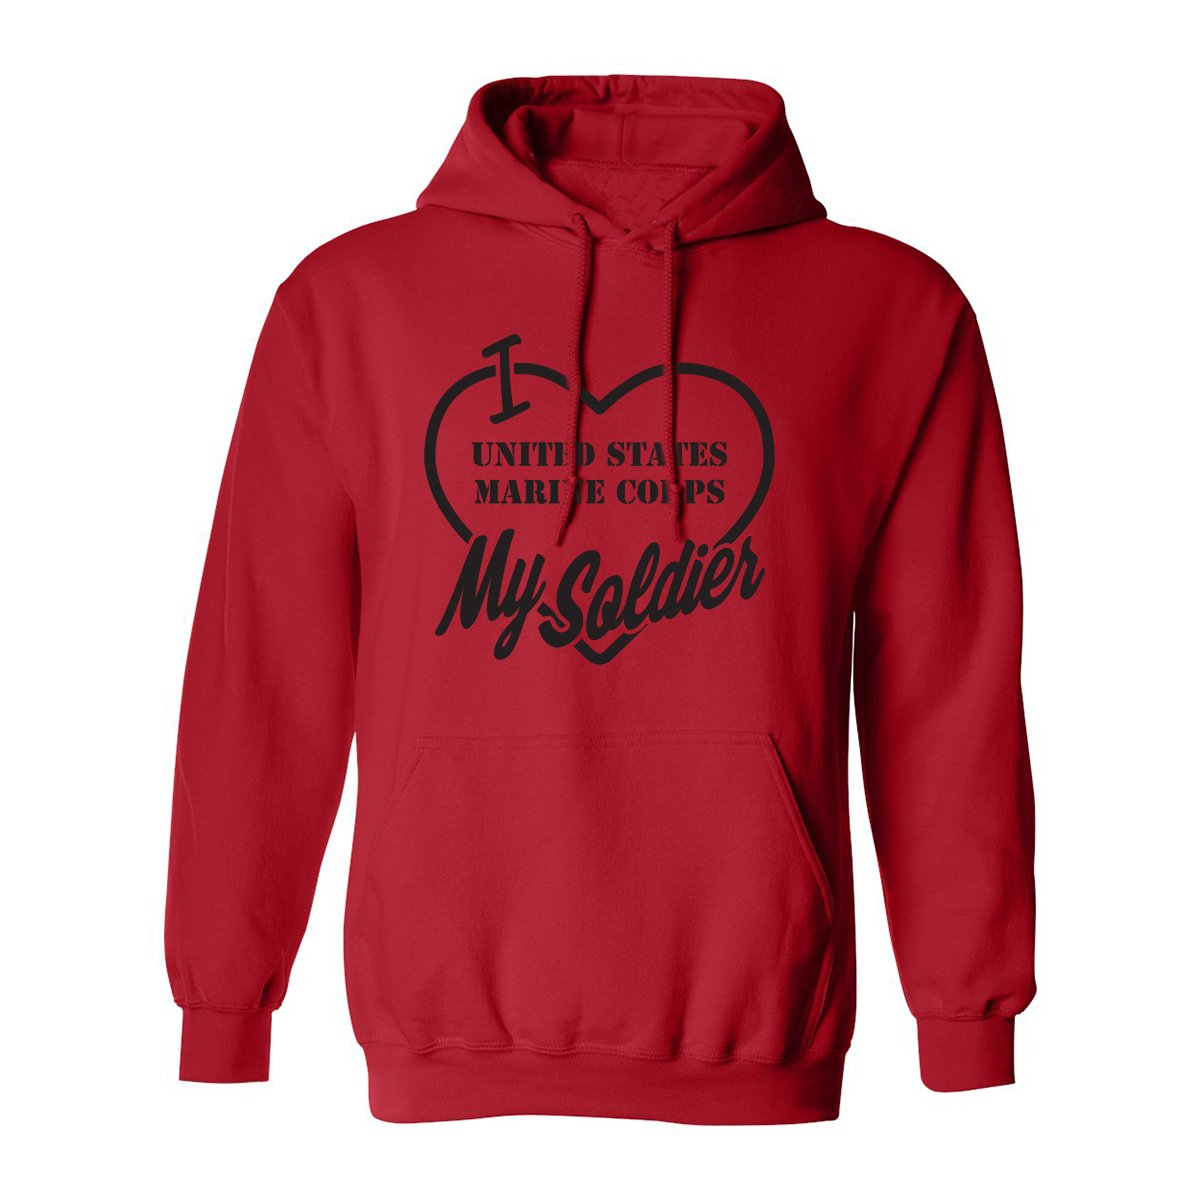 I Love My Soldier (Marine Corps) Adult Hooded Sweatshirt in Red - XXXX-Large